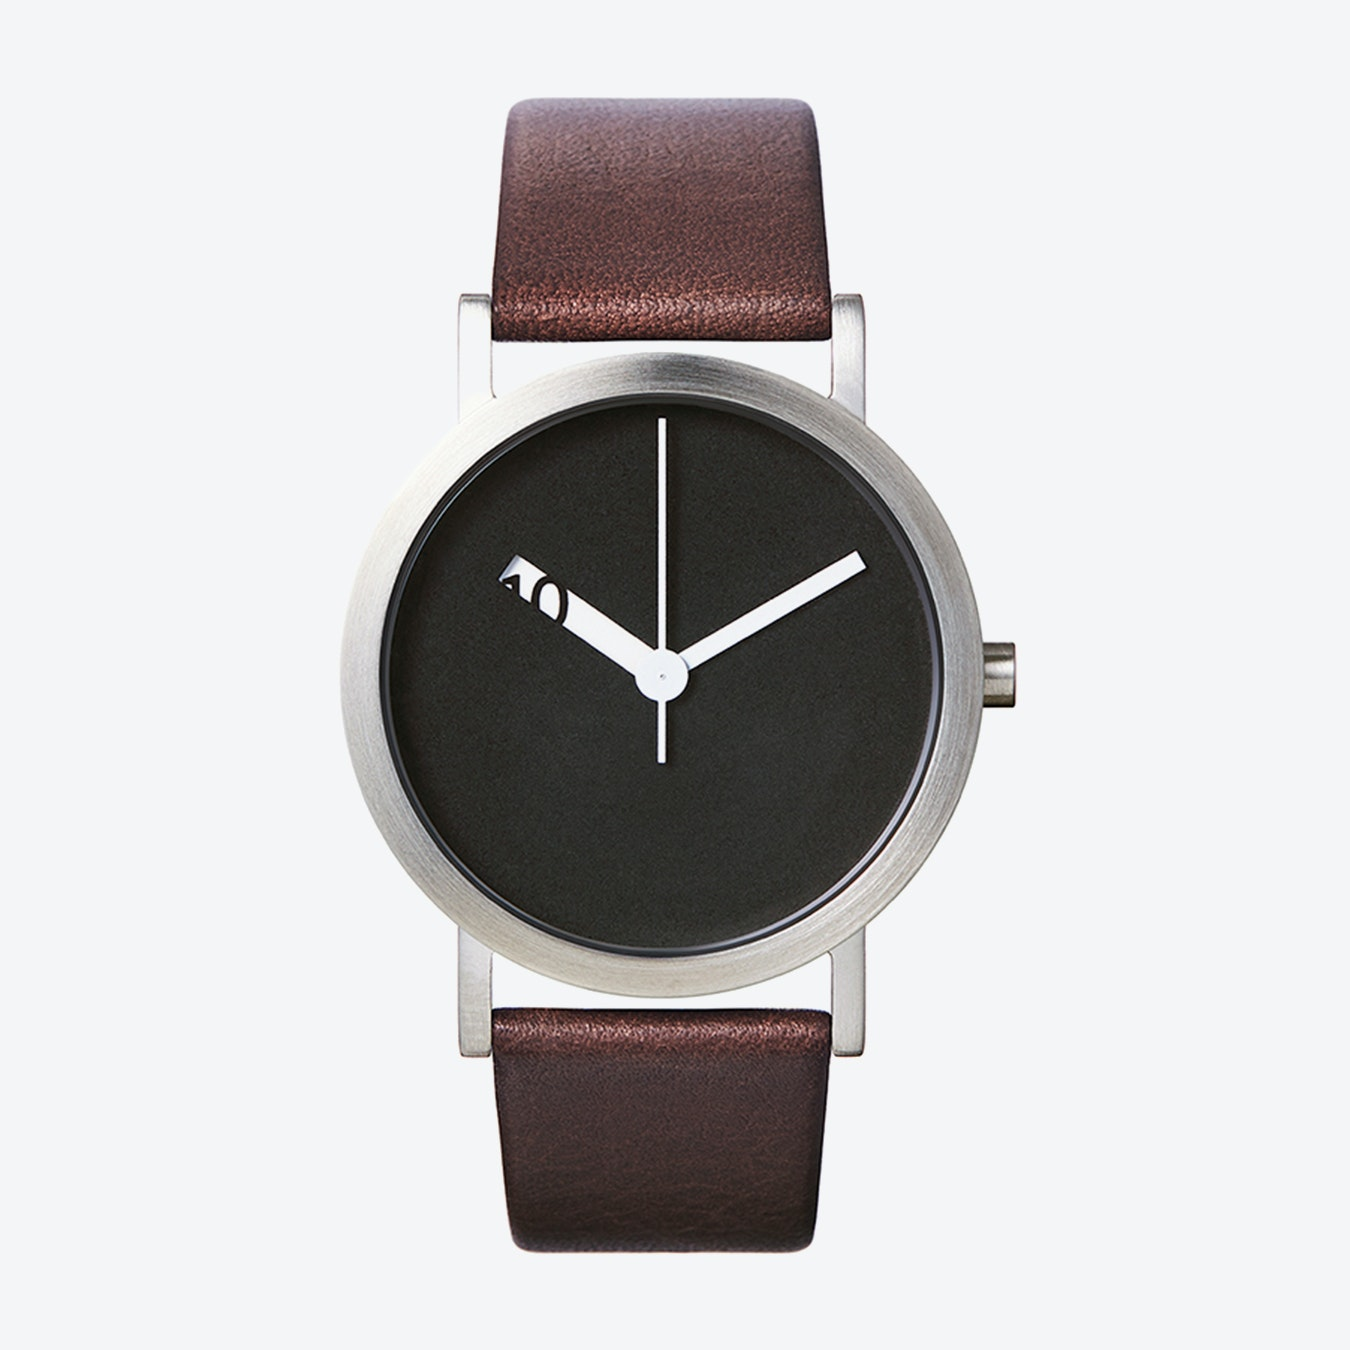 dcd350b69 Extra Normal Grande Watch w/ Black Face and Brown Calfskin Leather Strap by  Normal Timepieces